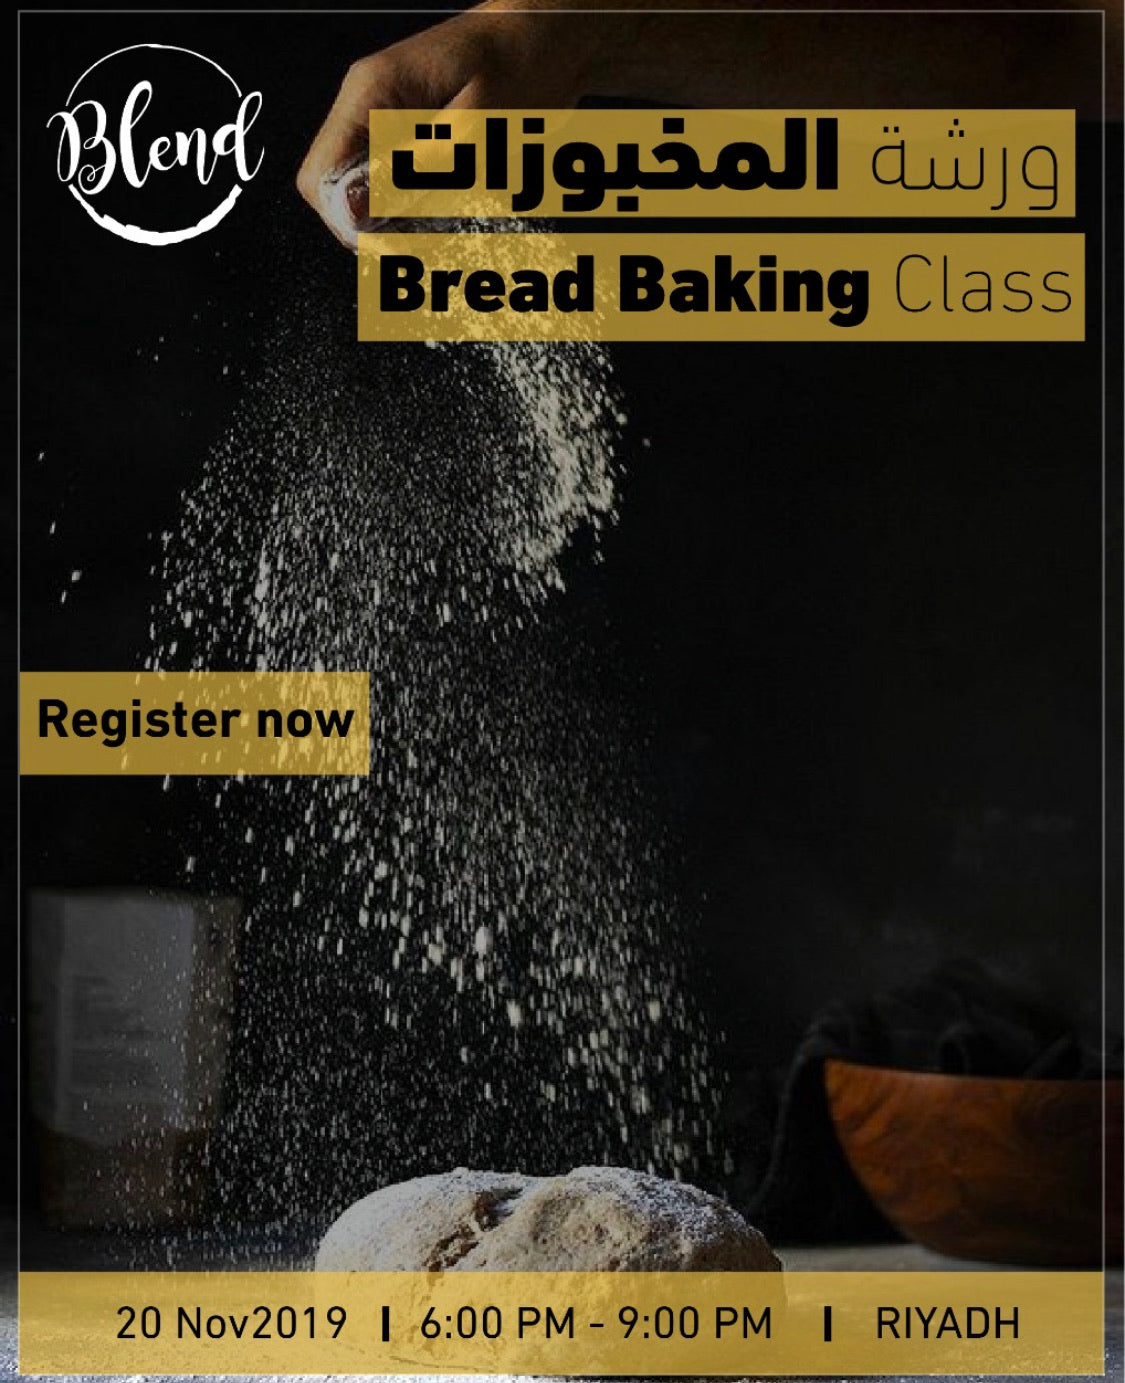 The Bread Baking Class (20 Nov 2019)